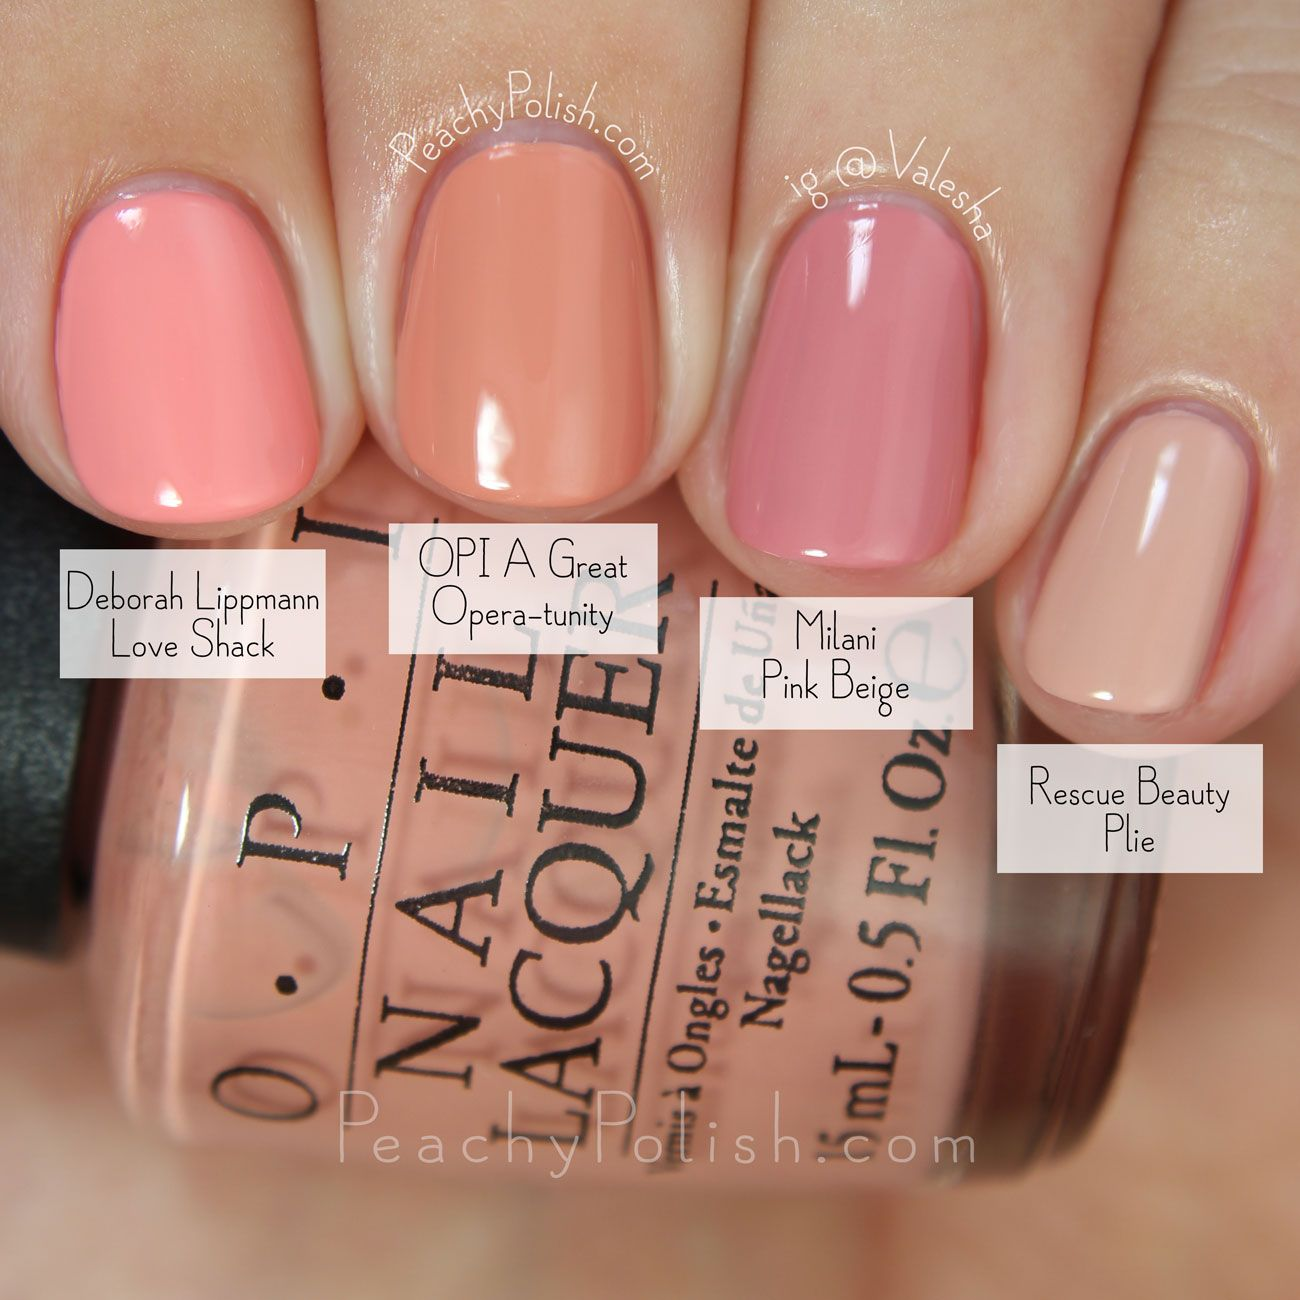 OPI A Great Opera-tunity Comparison | Fall 2015 Venice Collection ...